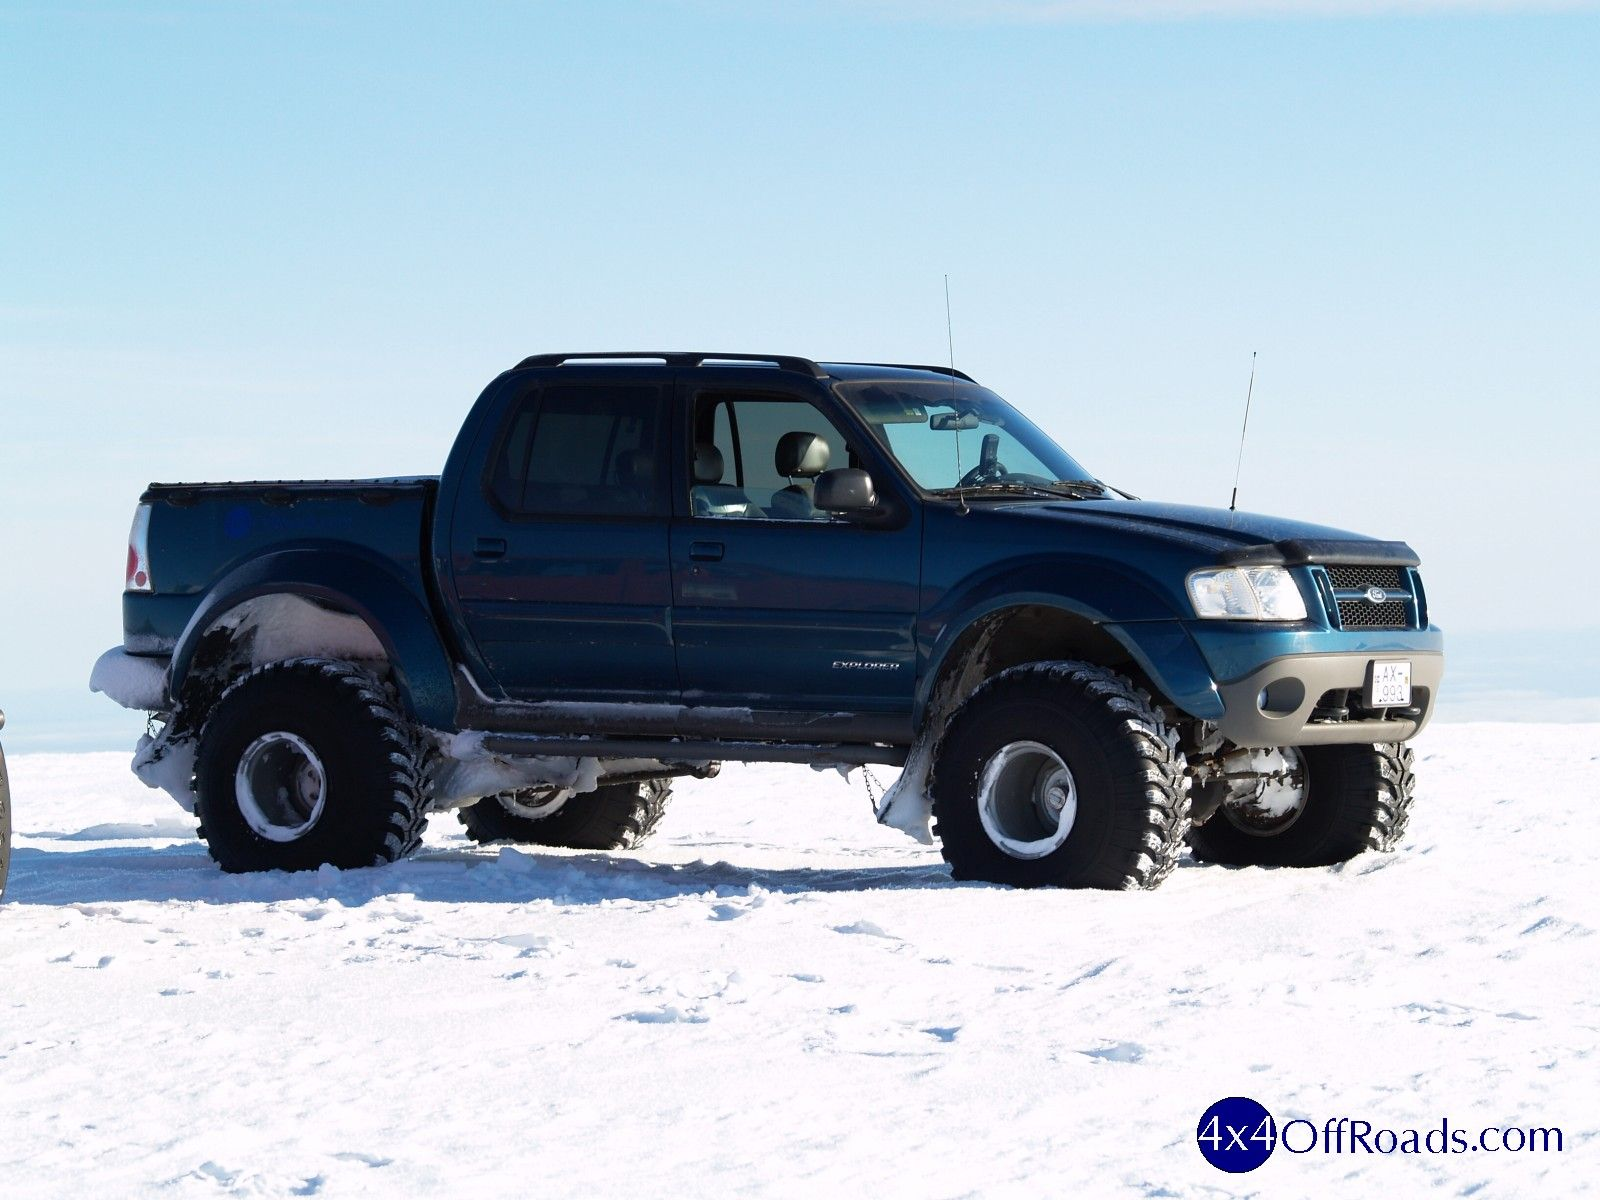 lifted sport trac the ford explorer sport trac wallpaper download pictures come in the